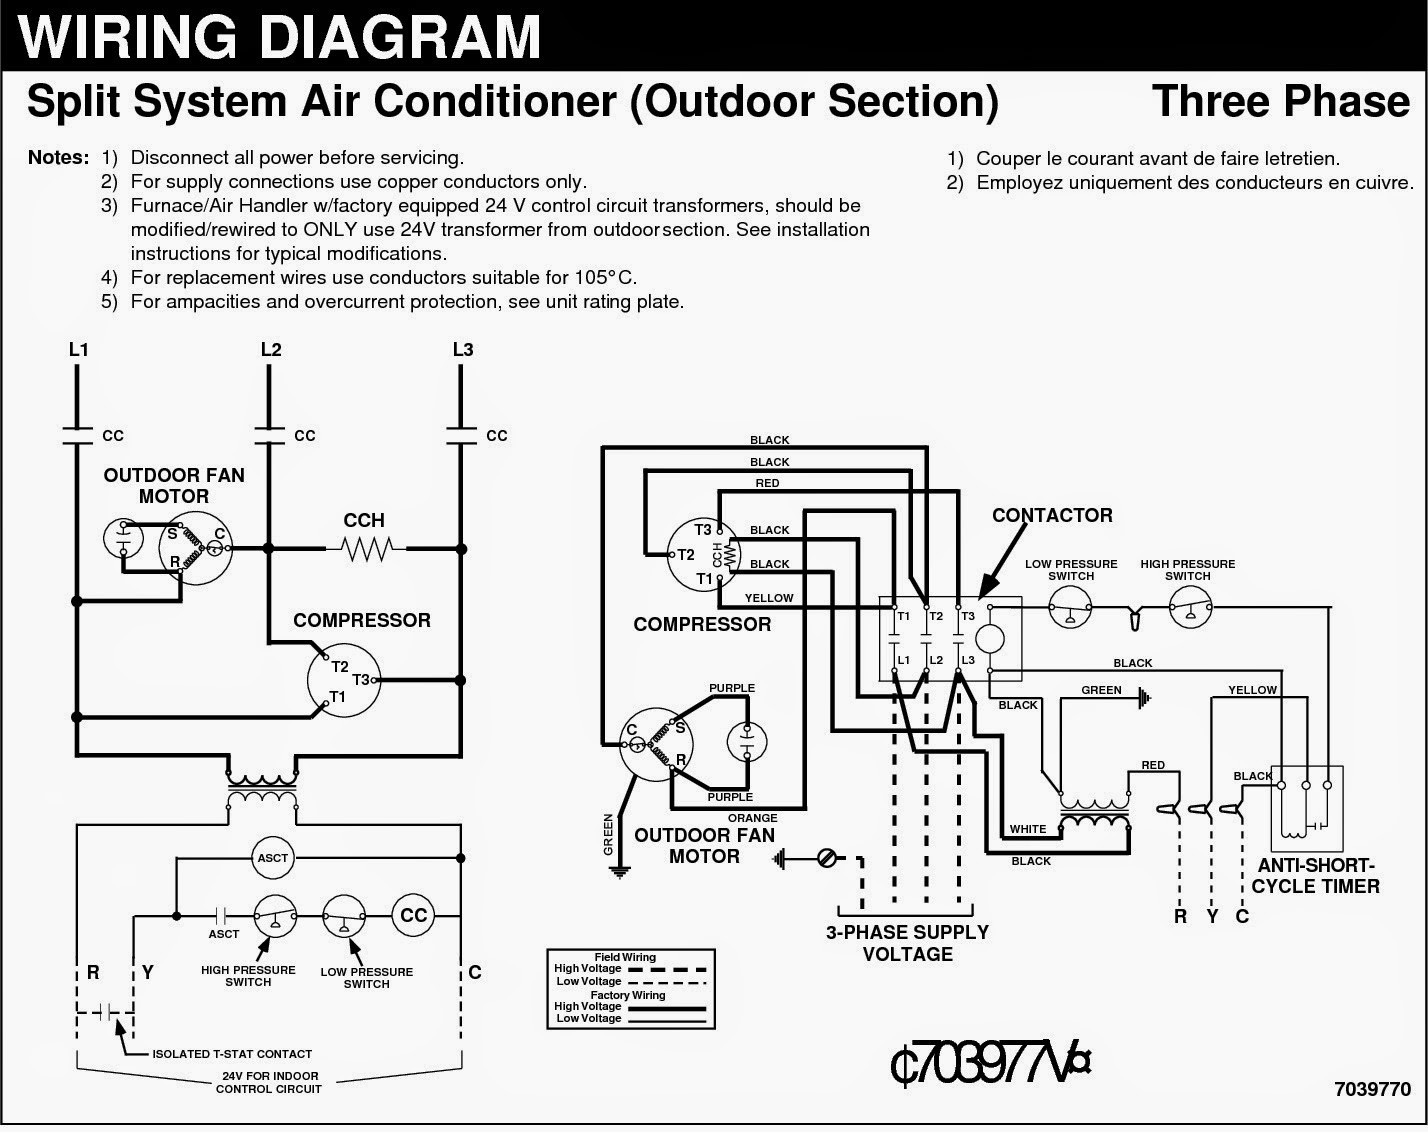 house wiring diagram hvac wiring diagrams scematic geothermal wiring diagram home hvac wiring diagram [ 1428 x 1132 Pixel ]